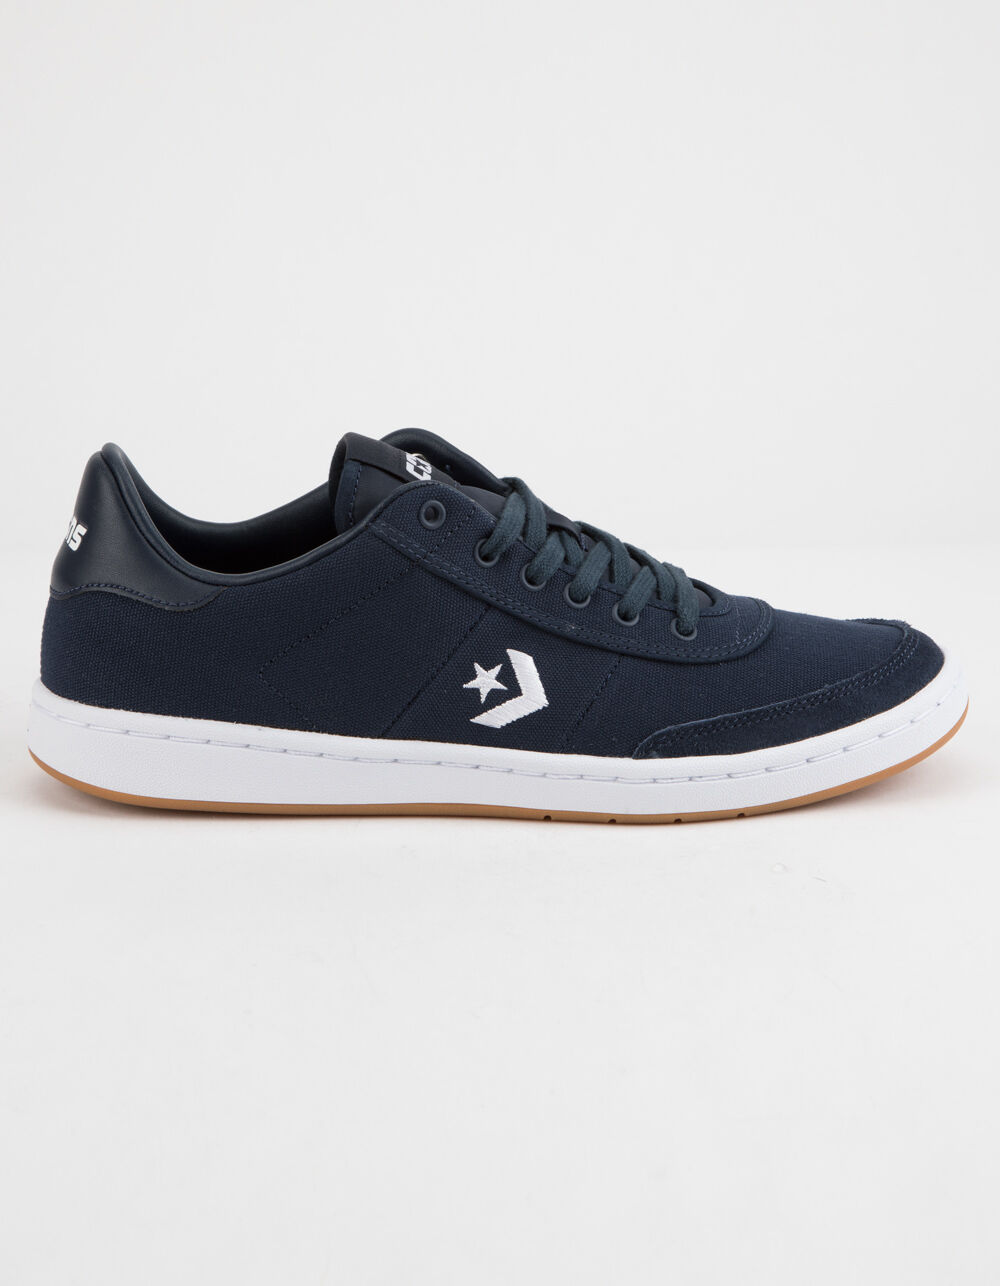 Image of CONVERSE BARCELONA PRO LOW TOP OBSIDIAN & WHITE SHOES